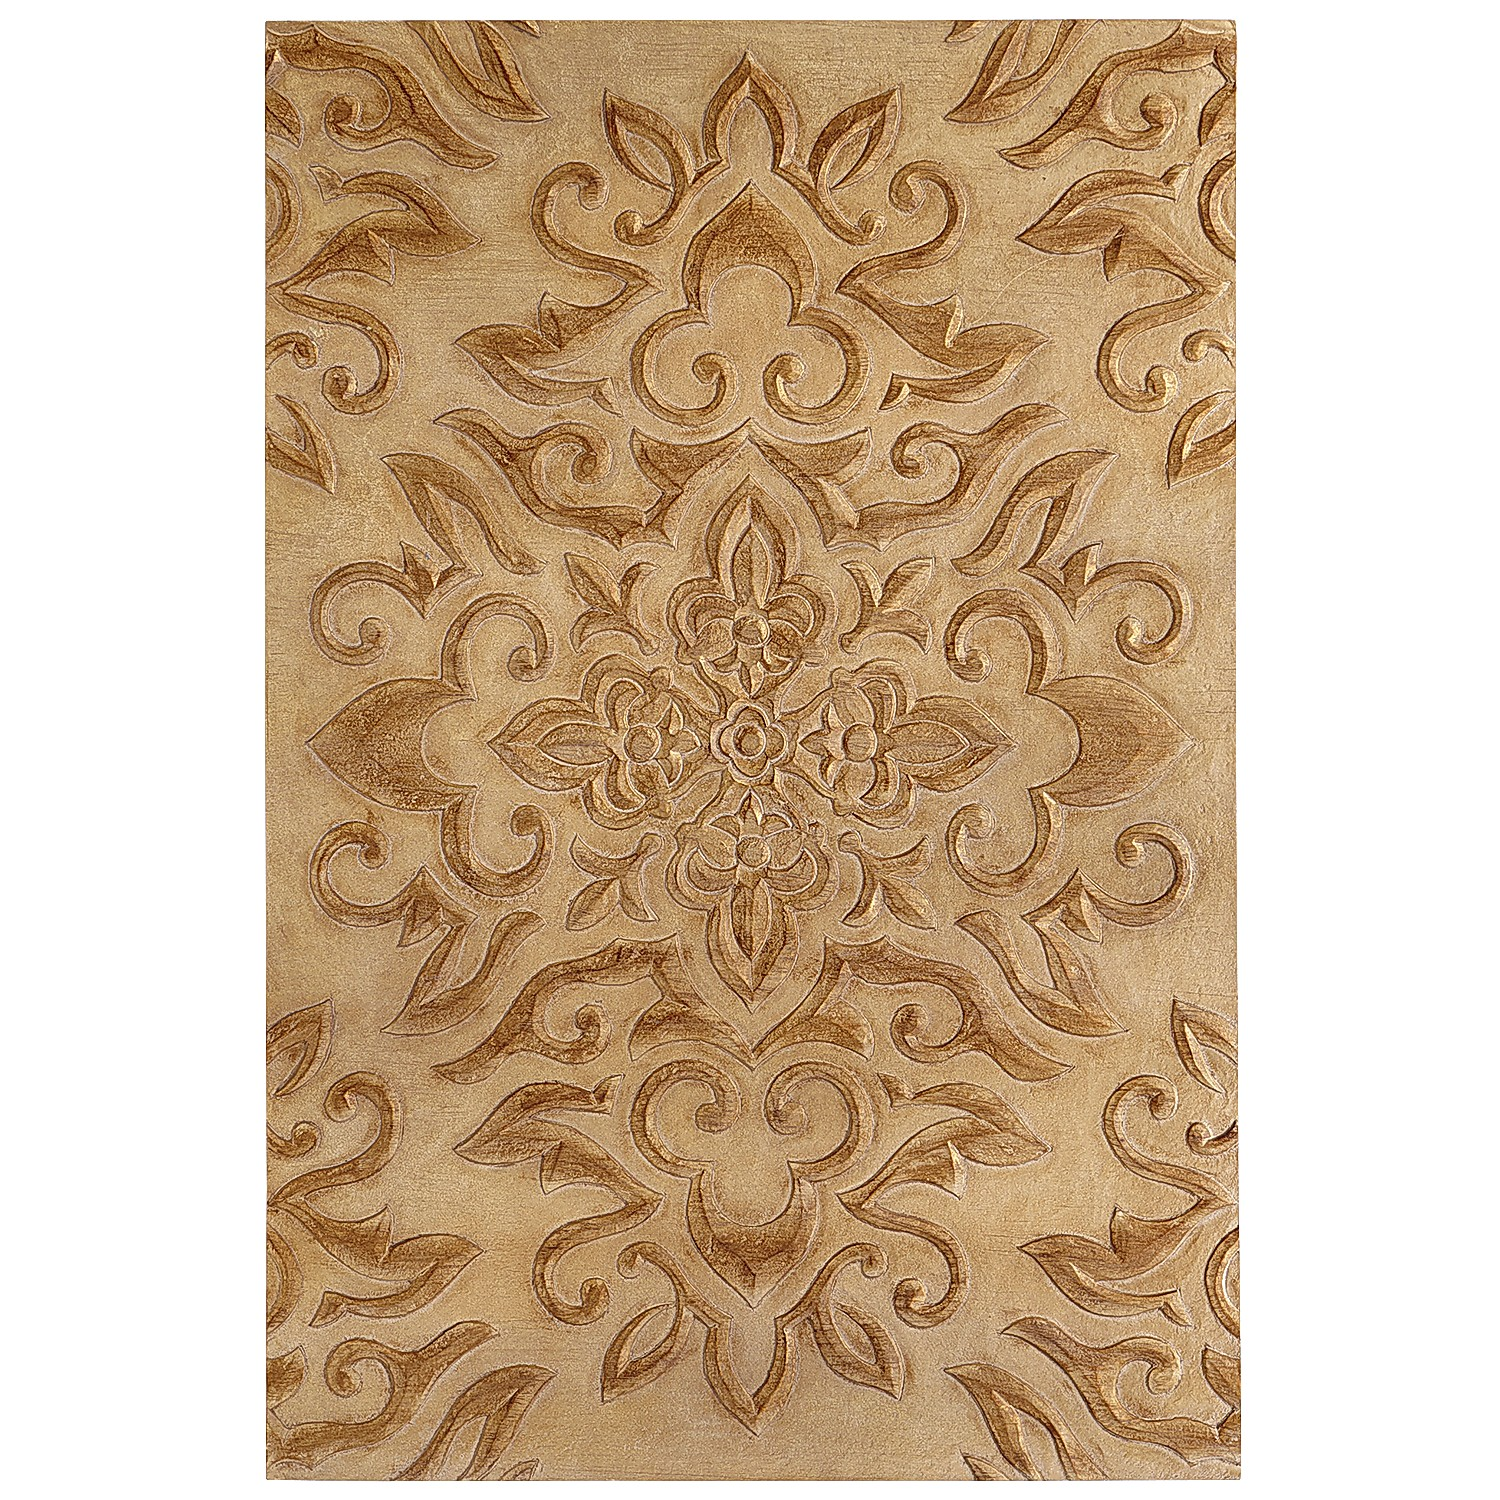 Carved Medallion Wall Panel